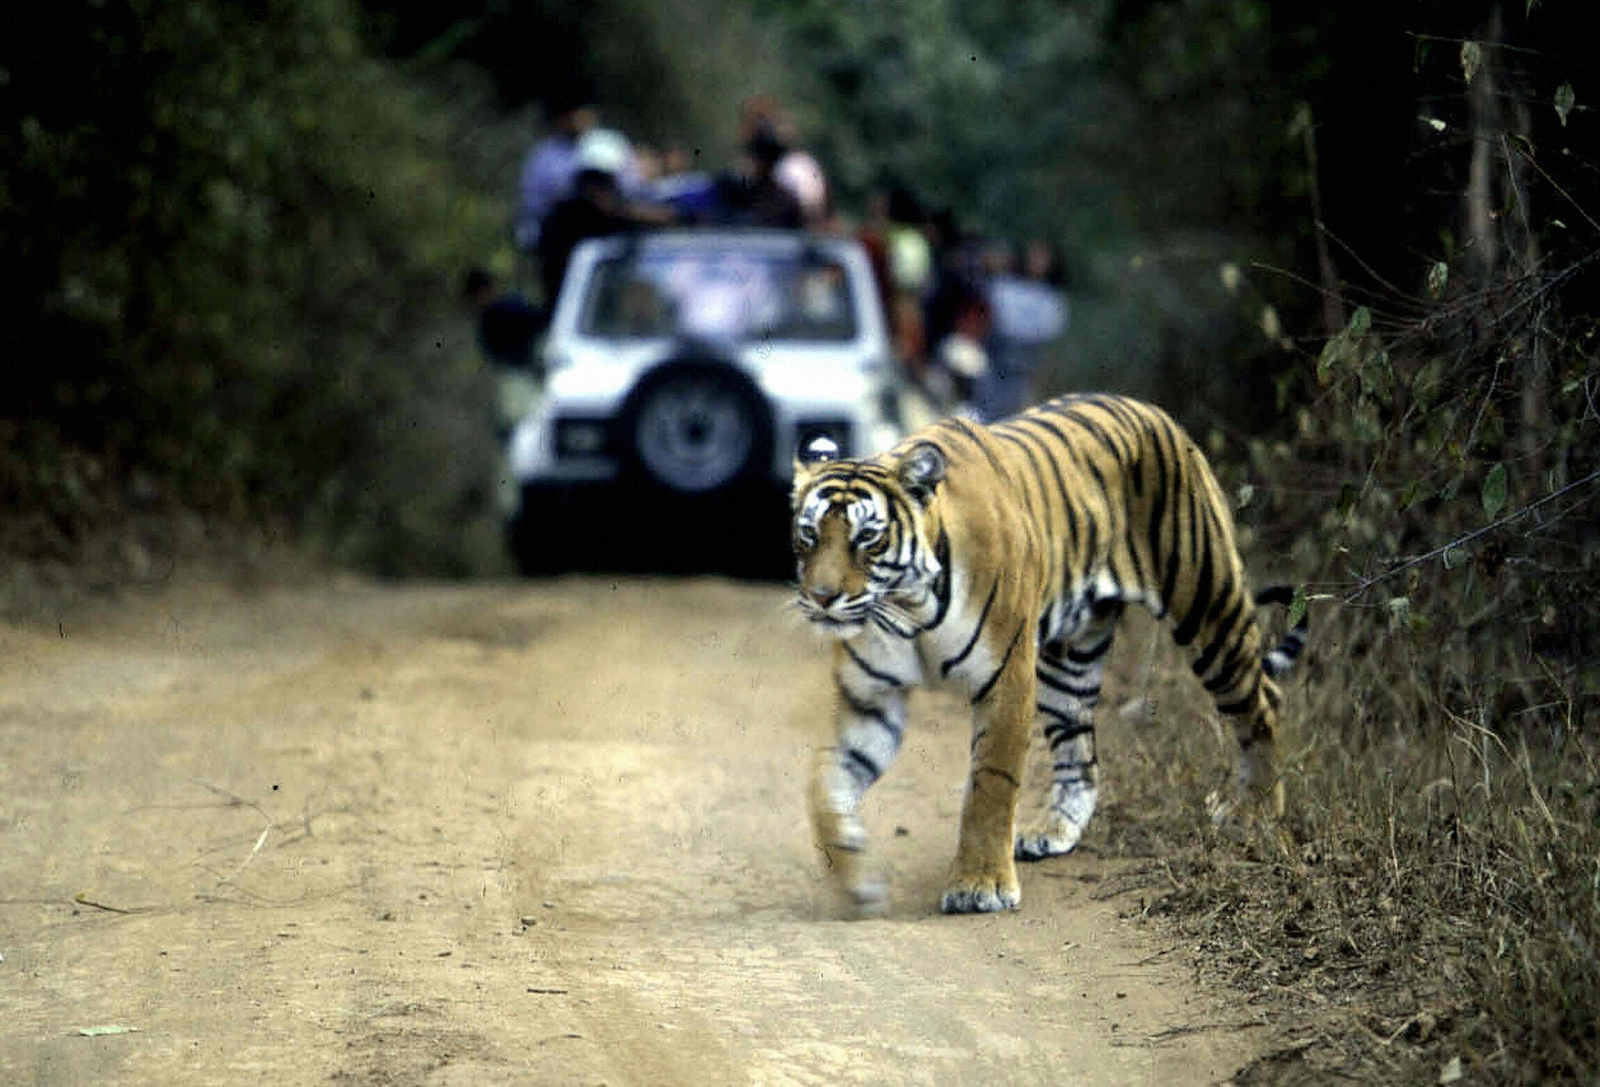 Once upon a time, a tiger called Machli ruled Ranthambore